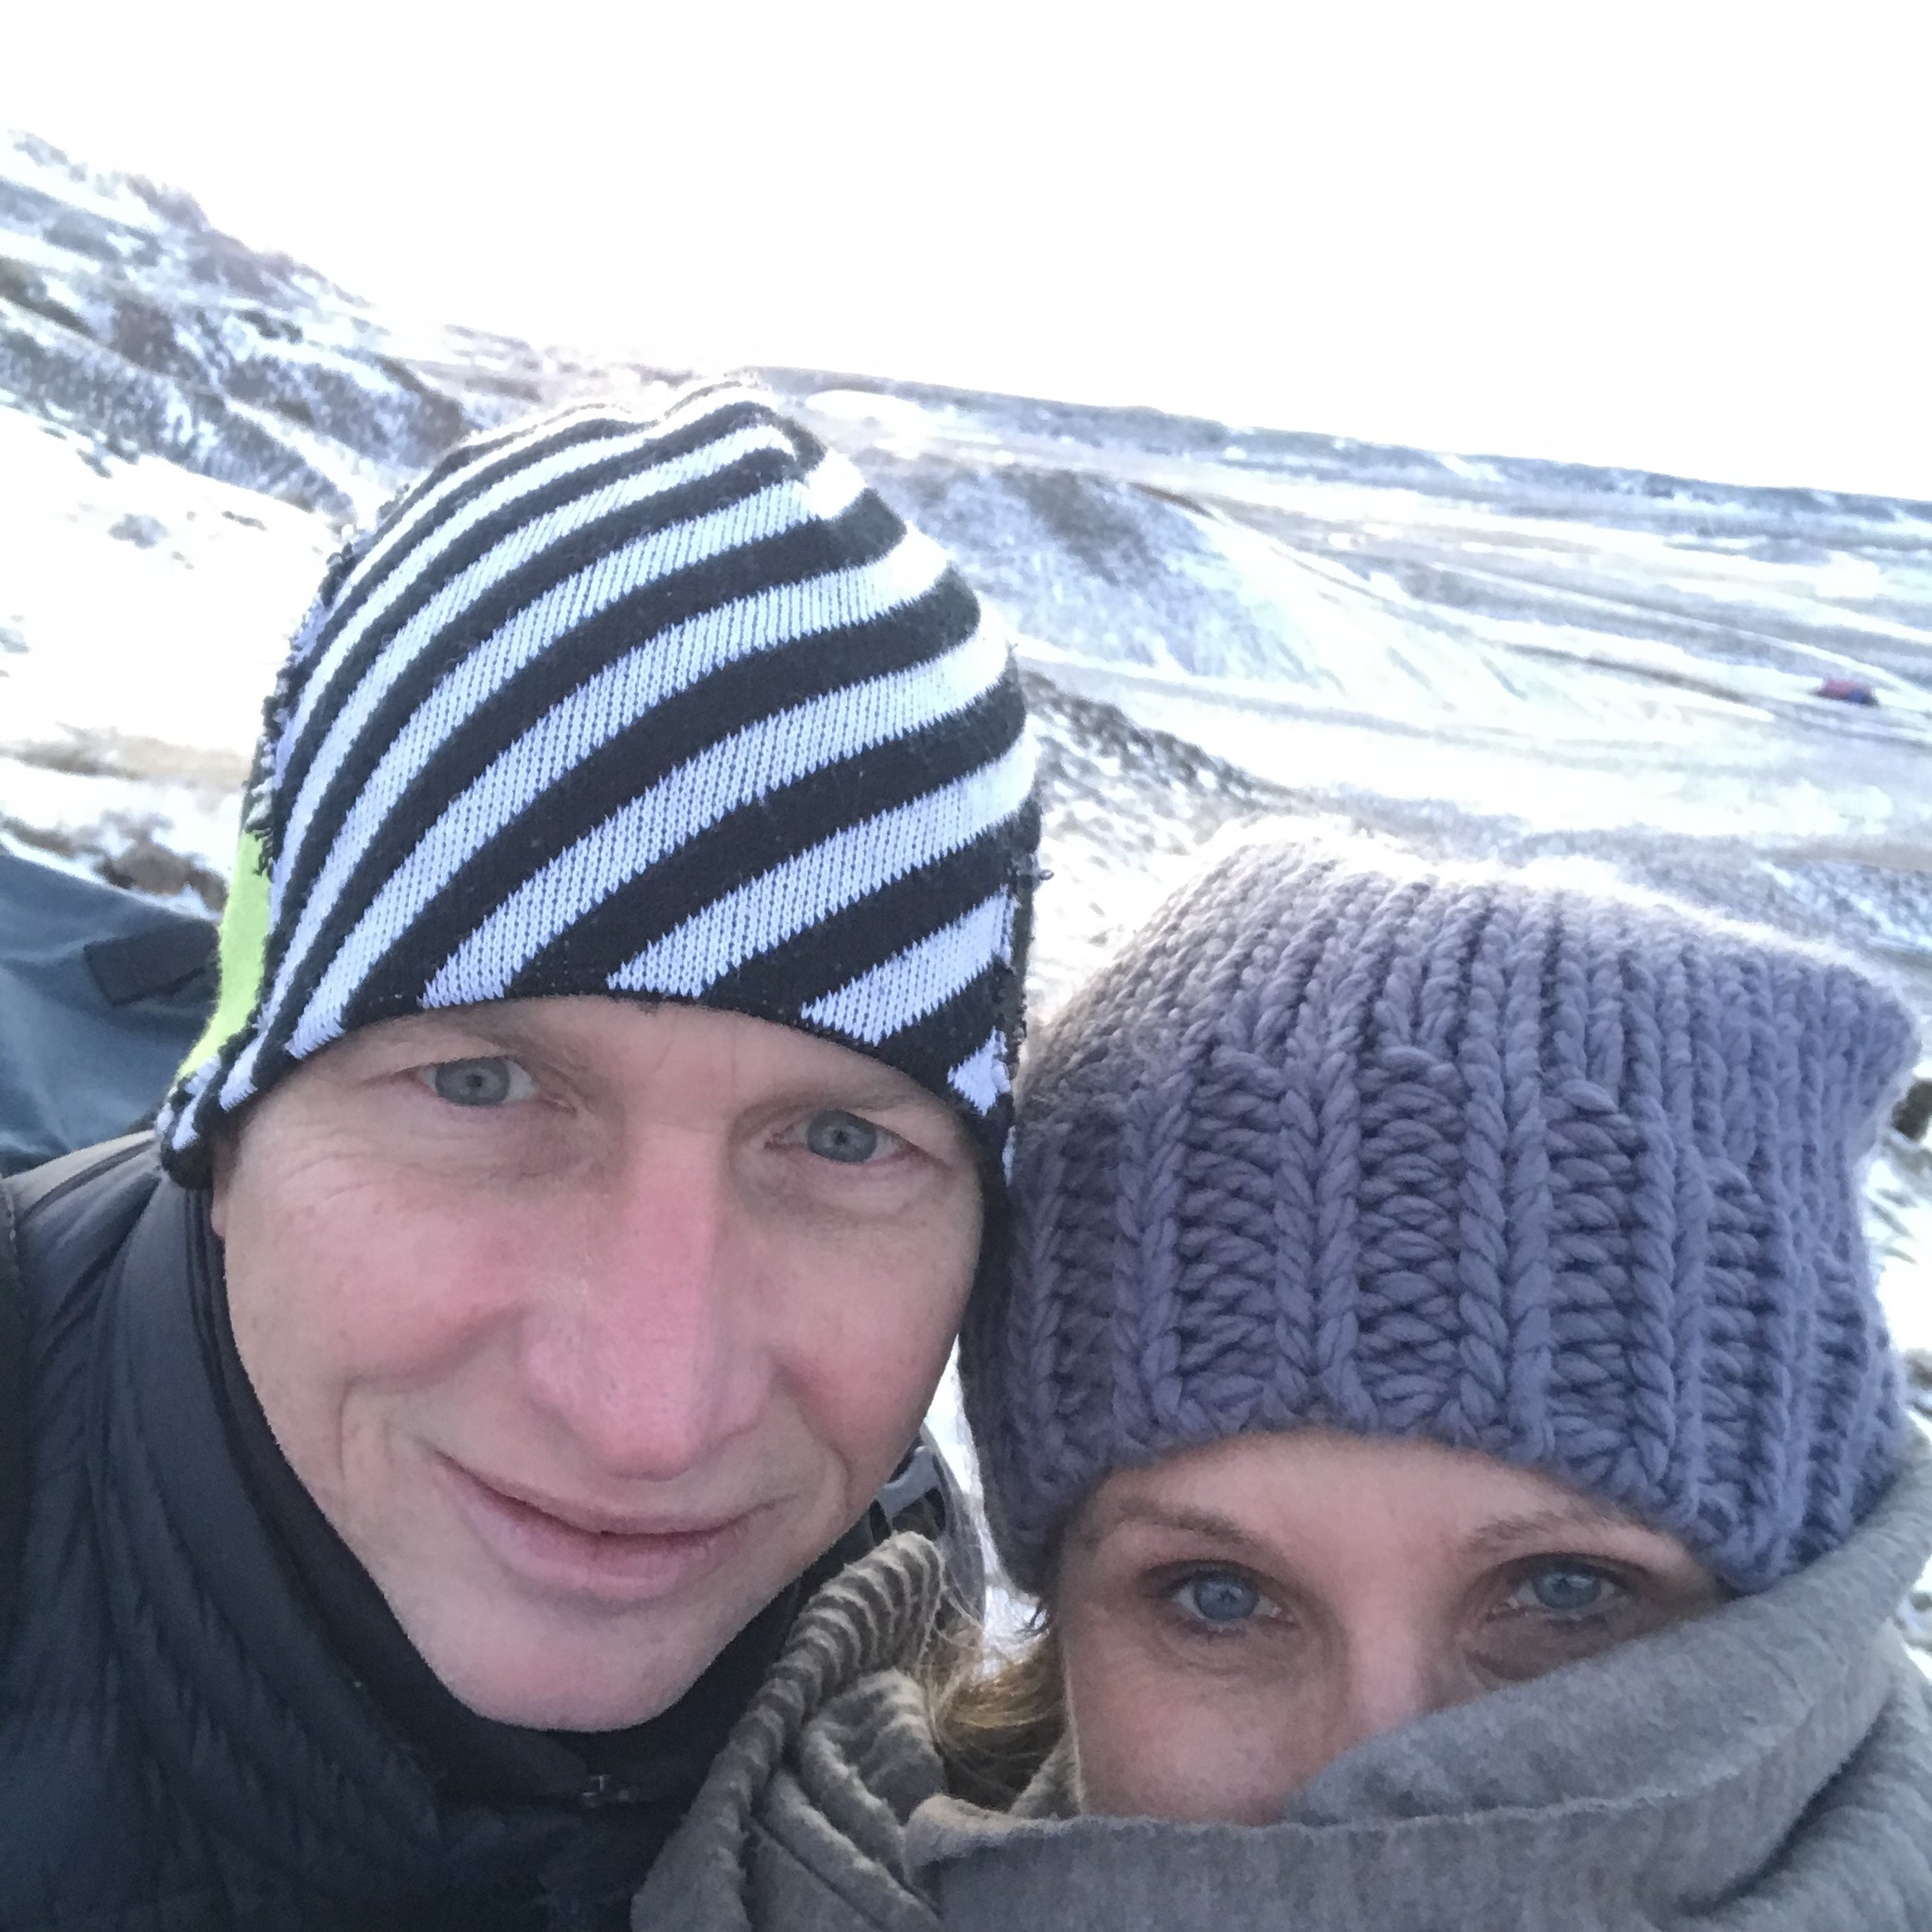 Me and Hot Hubby in the chill. iceland